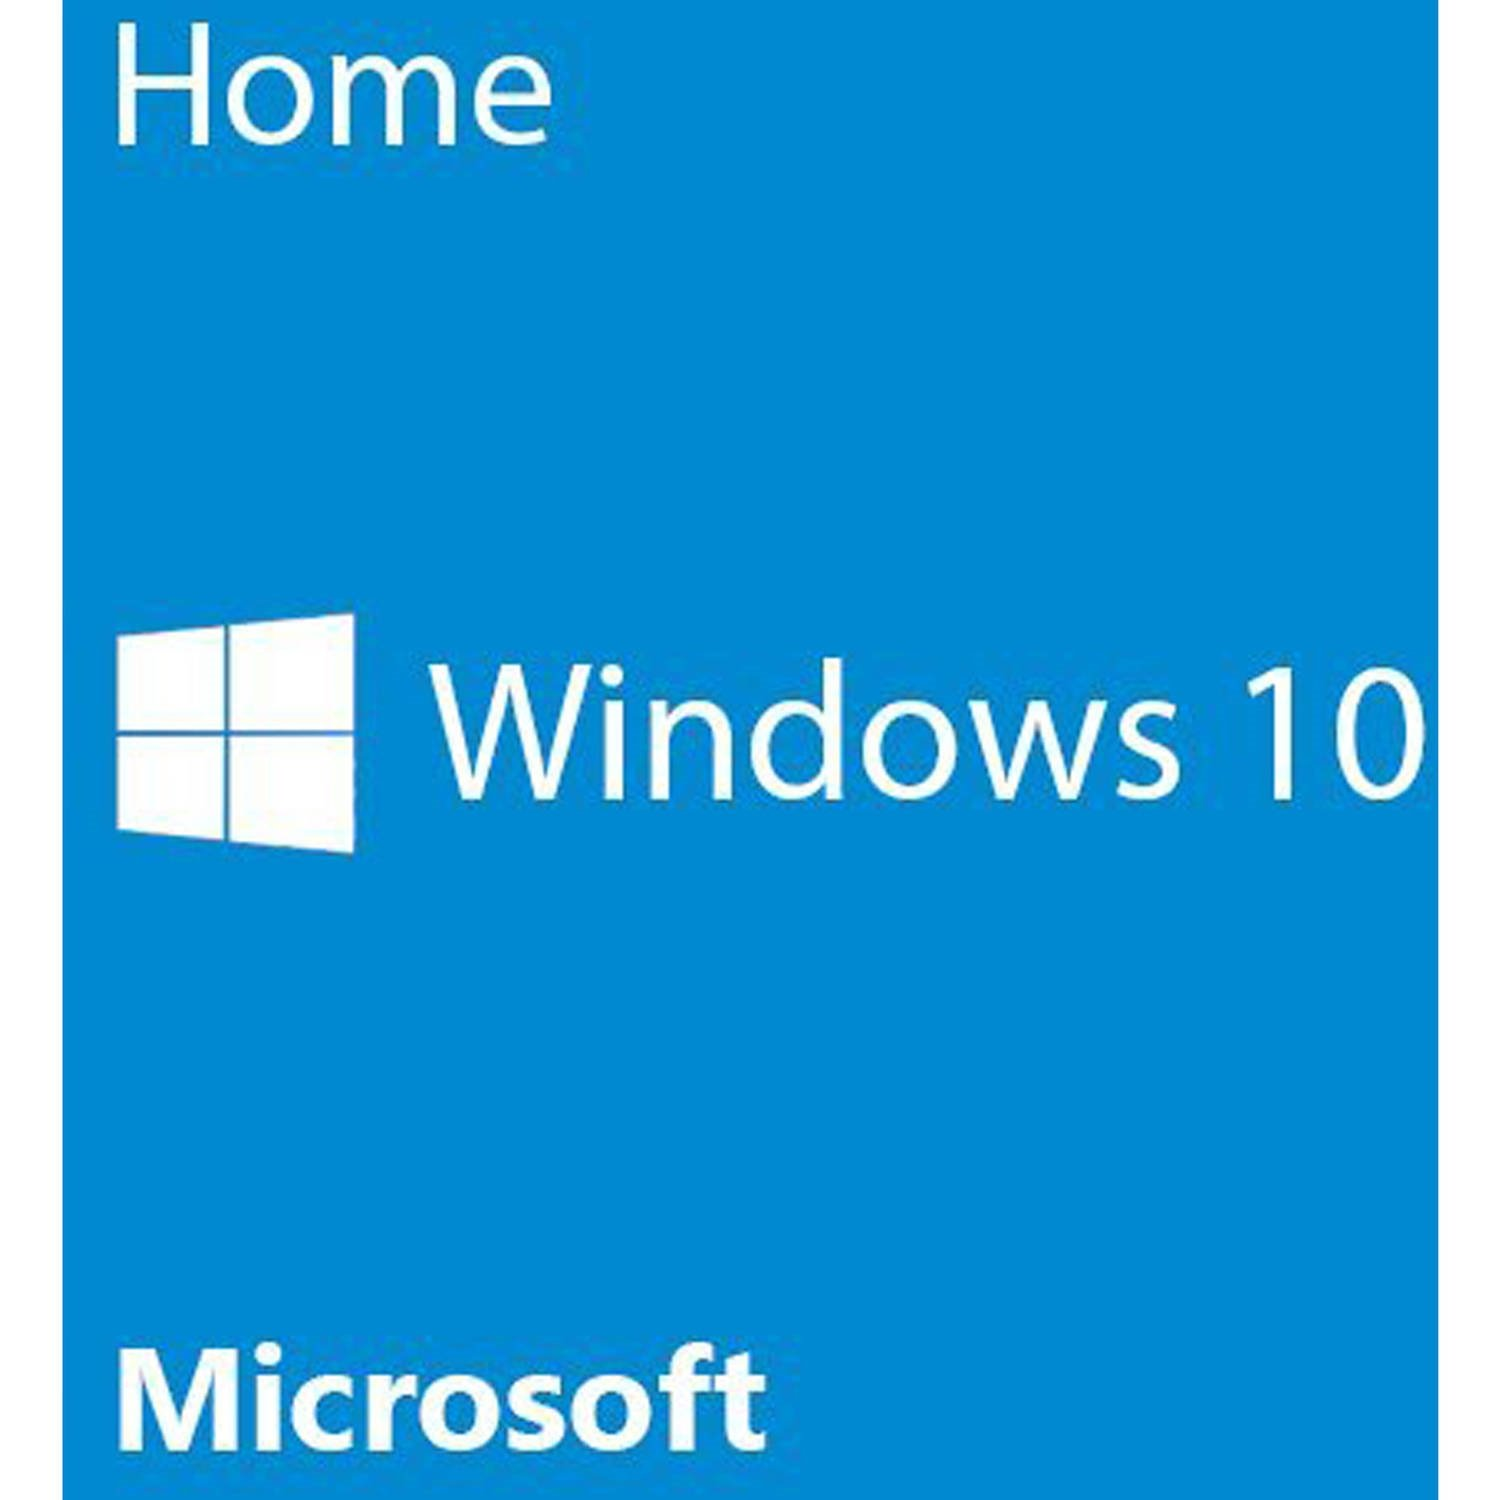 Windows 10 Home Activation Product Key